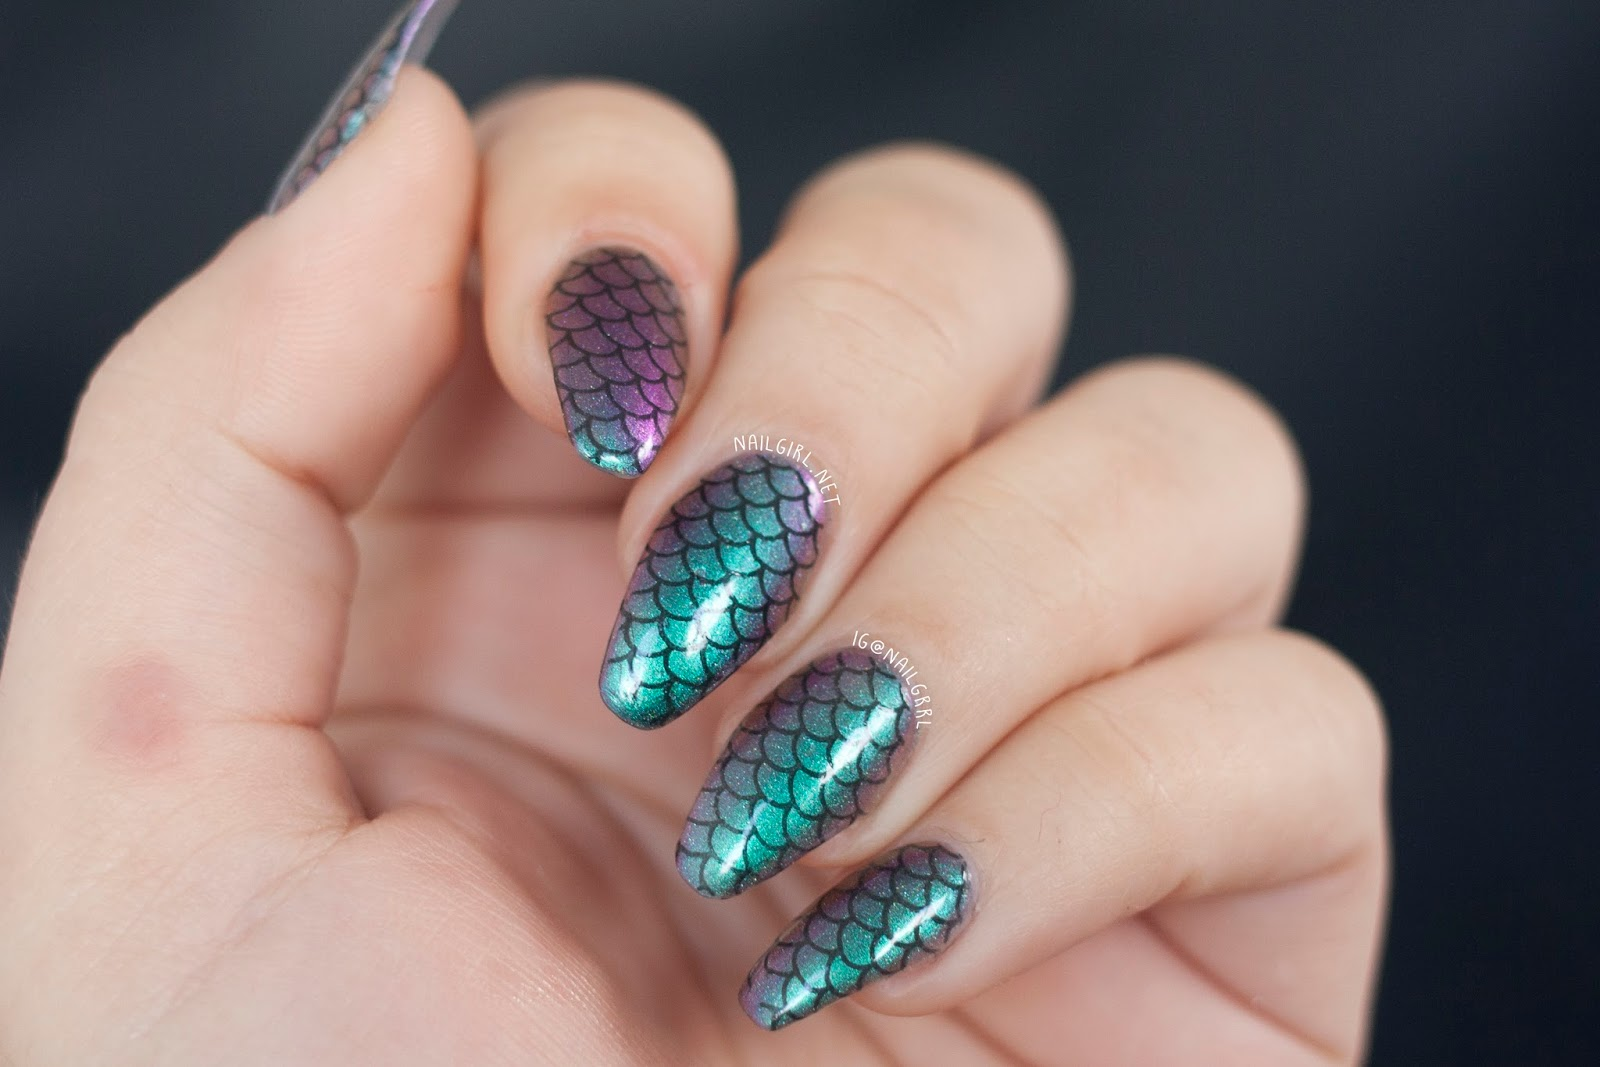 nail girl nail art mermaid nails